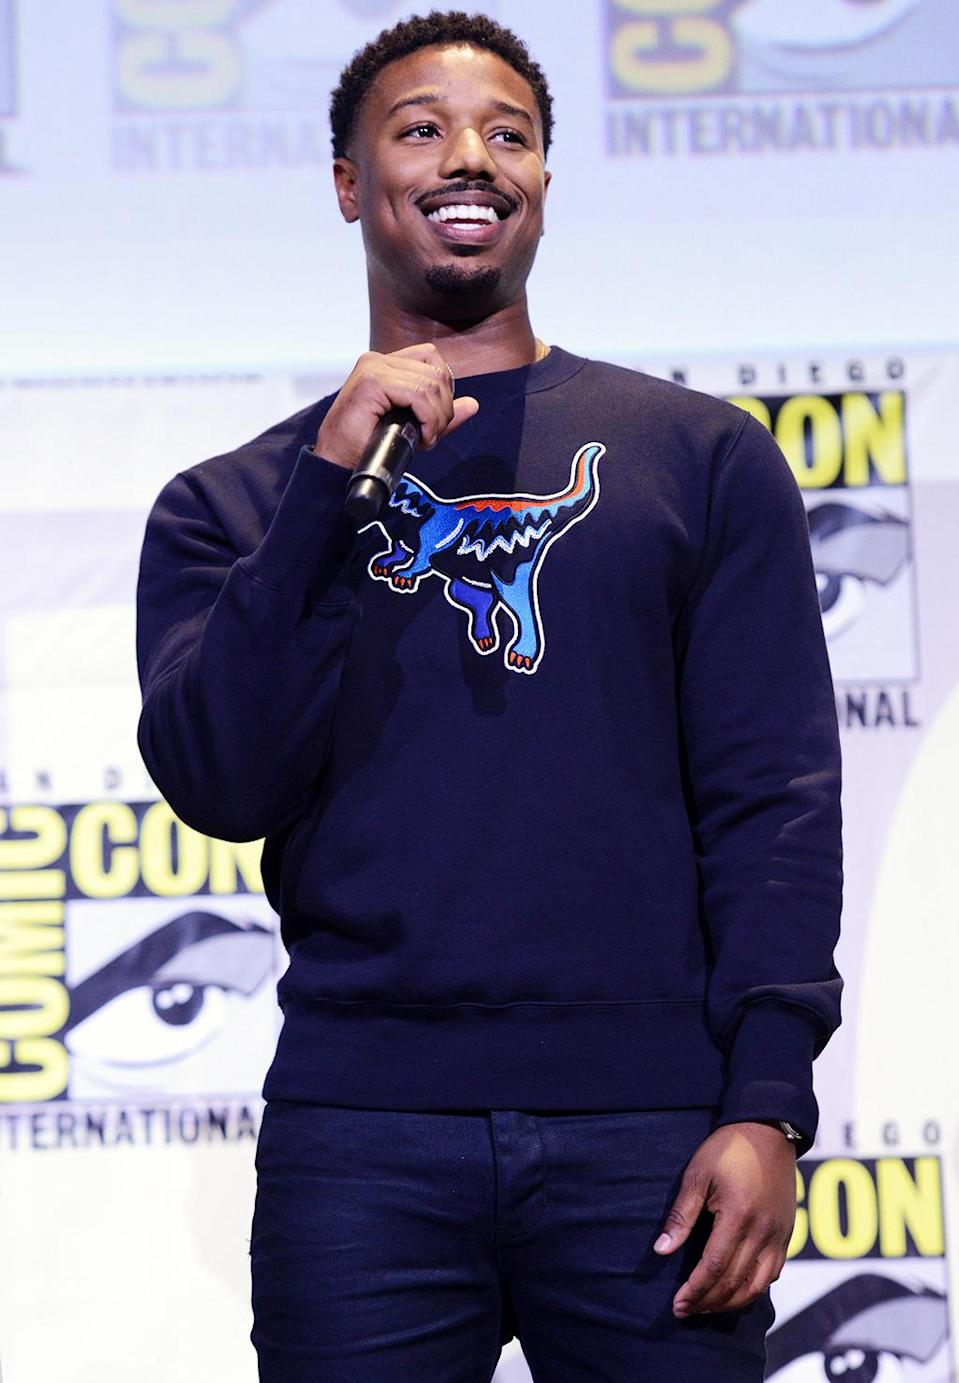 <p>The <i>Creed</i> star is joining the <i>Black Panther</i> cast as expert fighter Erik Killmonger. <i>(Photo: Albert L. Ortega/Getty Images)</i></p>